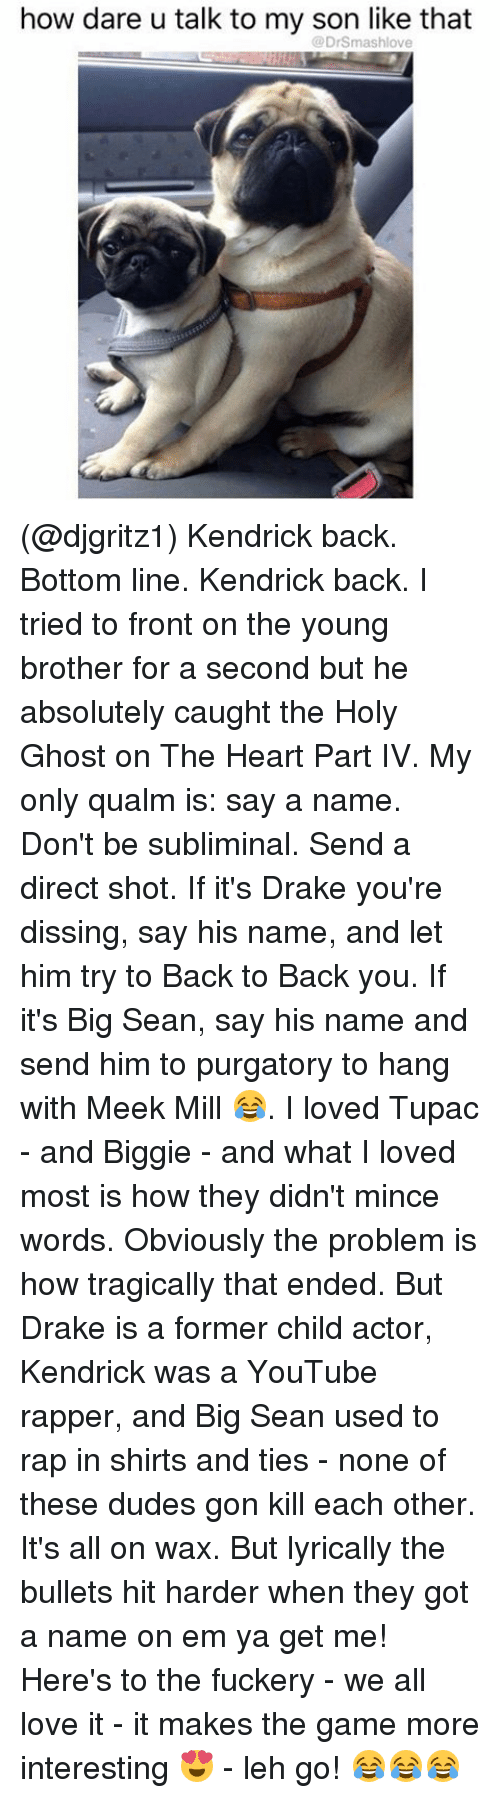 Dissing: how dare u talk to my son like that  @DrSmashlove (@djgritz1) Kendrick back. Bottom line. Kendrick back. I tried to front on the young brother for a second but he absolutely caught the Holy Ghost on The Heart Part IV. My only qualm is: say a name. Don't be subliminal. Send a direct shot. If it's Drake you're dissing, say his name, and let him try to Back to Back you. If it's Big Sean, say his name and send him to purgatory to hang with Meek Mill 😂. I loved Tupac - and Biggie - and what I loved most is how they didn't mince words. Obviously the problem is how tragically that ended. But Drake is a former child actor, Kendrick was a YouTube rapper, and Big Sean used to rap in shirts and ties - none of these dudes gon kill each other. It's all on wax. But lyrically the bullets hit harder when they got a name on em ya get me! Here's to the fuckery - we all love it - it makes the game more interesting 😍 - leh go! 😂😂😂